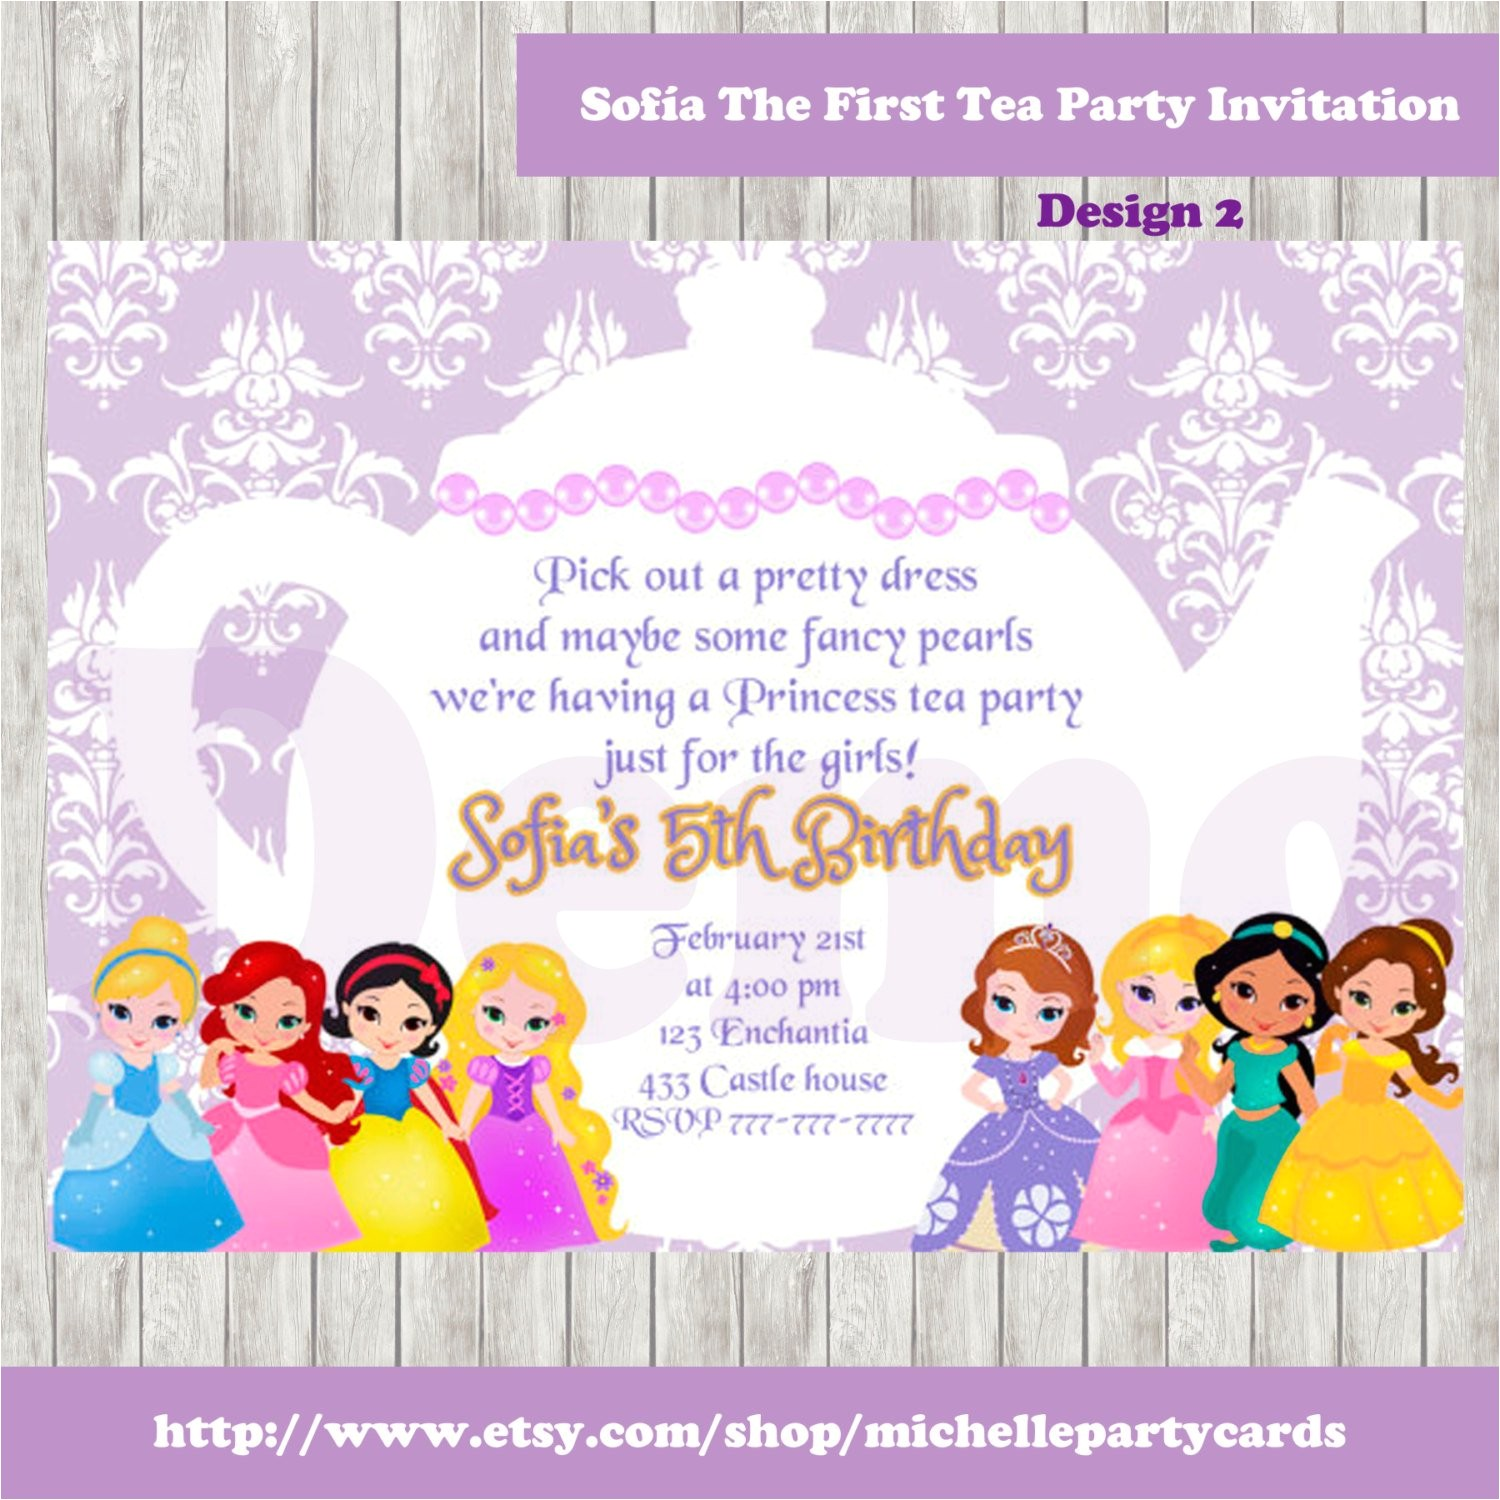 50off sofia the first tea party